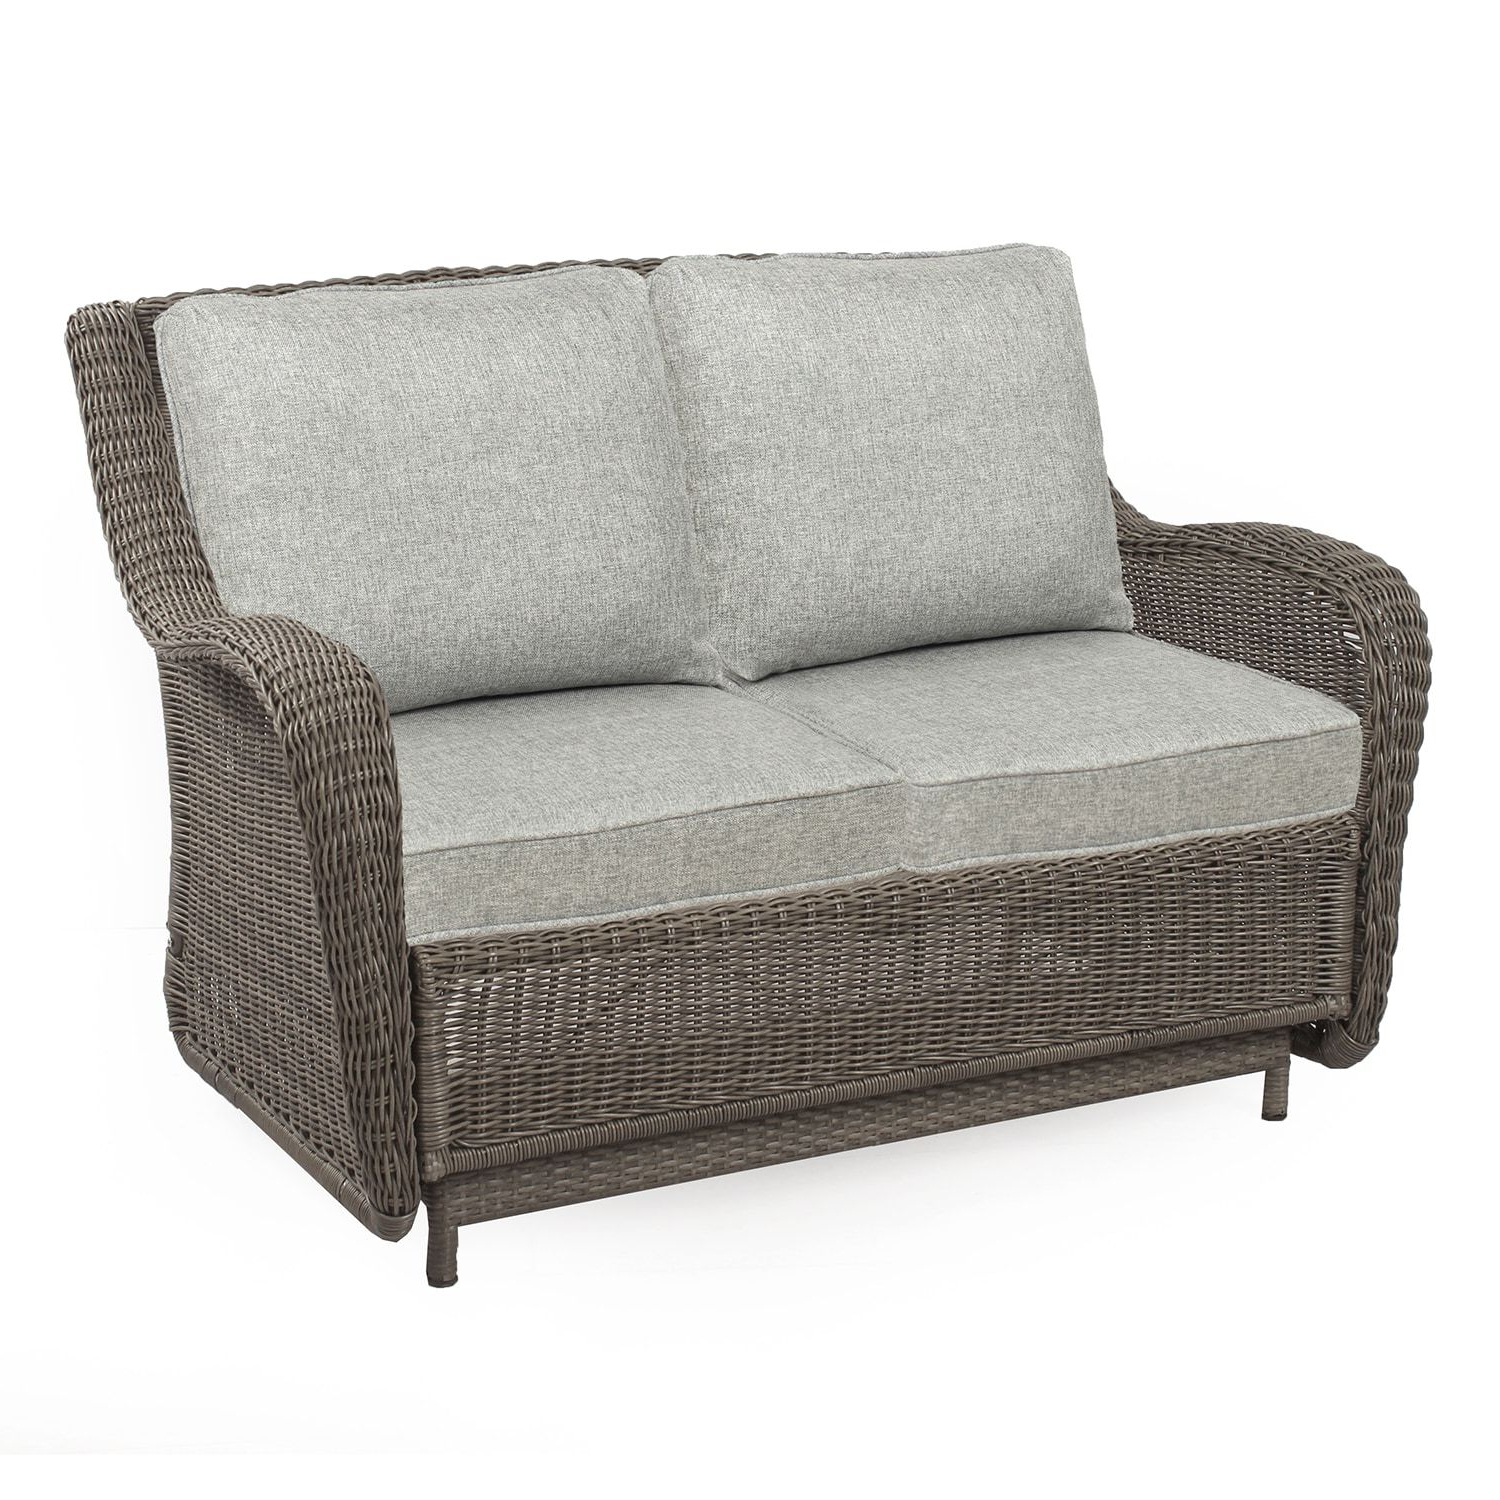 Outdoor Loveseat Gliders With Cushion In Preferred Sonoma Goods For Life? Presidio Patio Glider Loveseat (View 5 of 25)